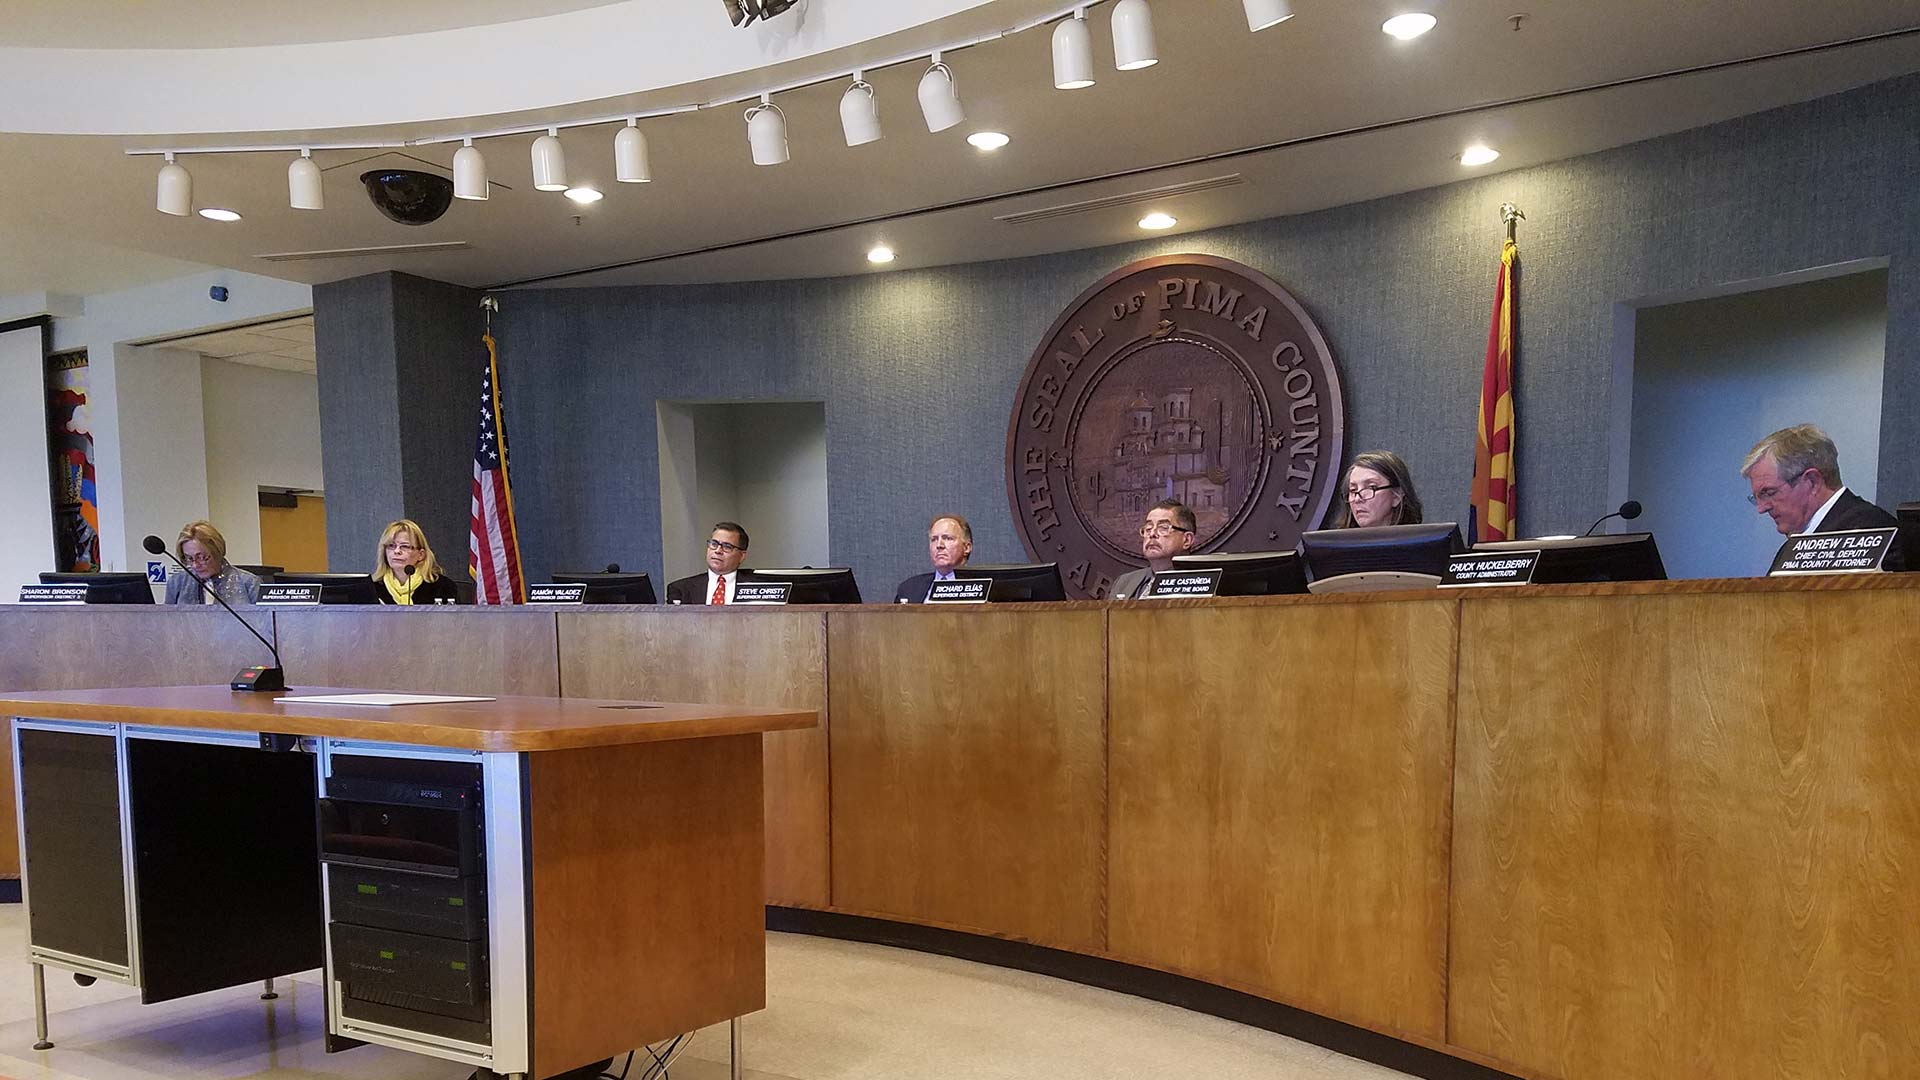 The Pima County Board of Supervisors at a March 20, 2018 meeting.